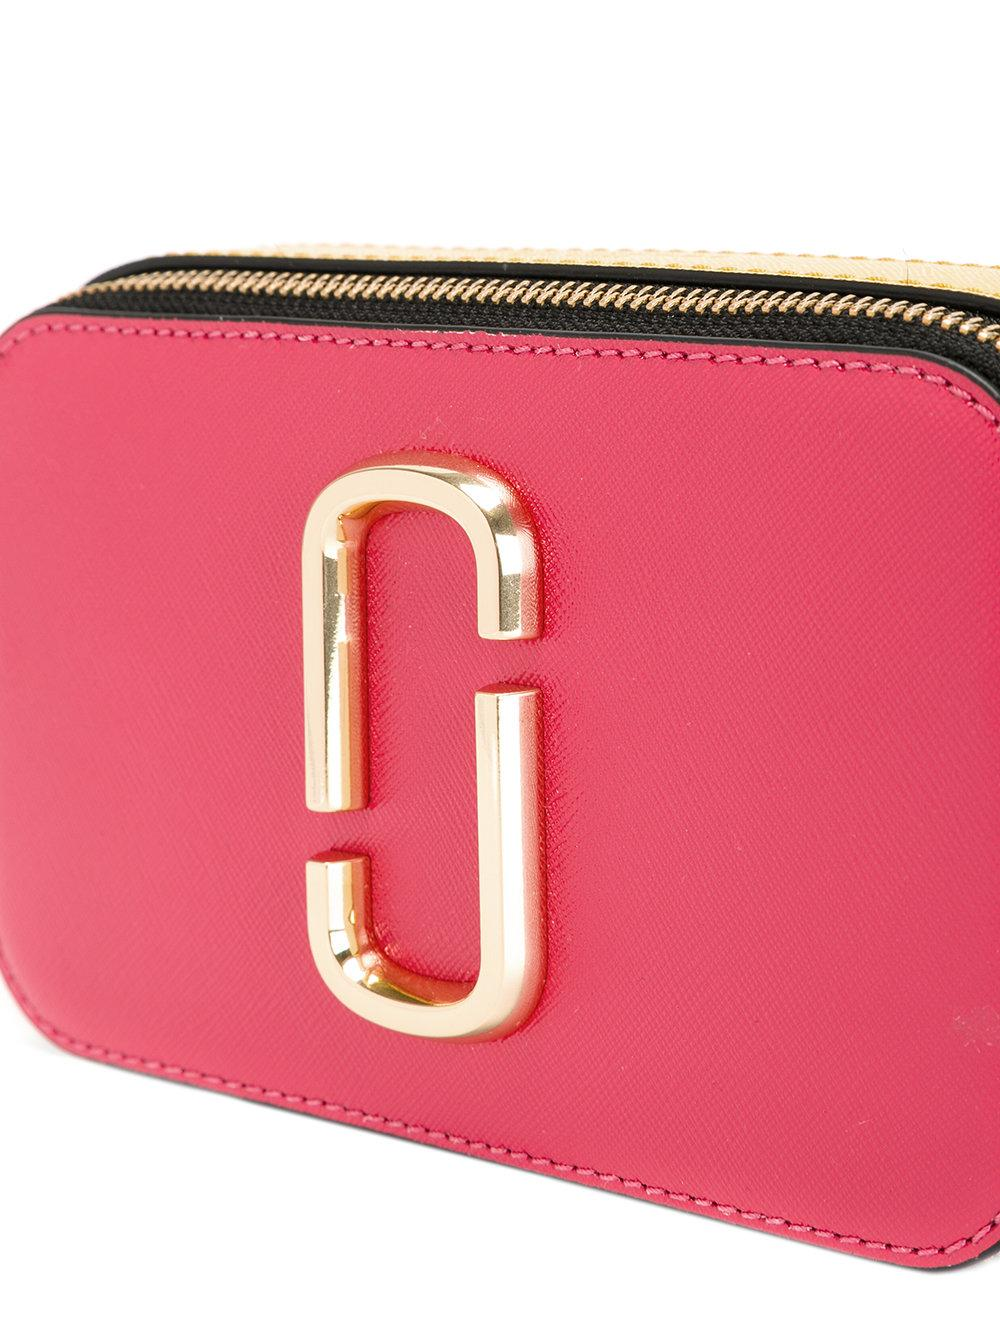 Marc Jacobs Leather Rainbow Strap Shoulder Bag In Pink